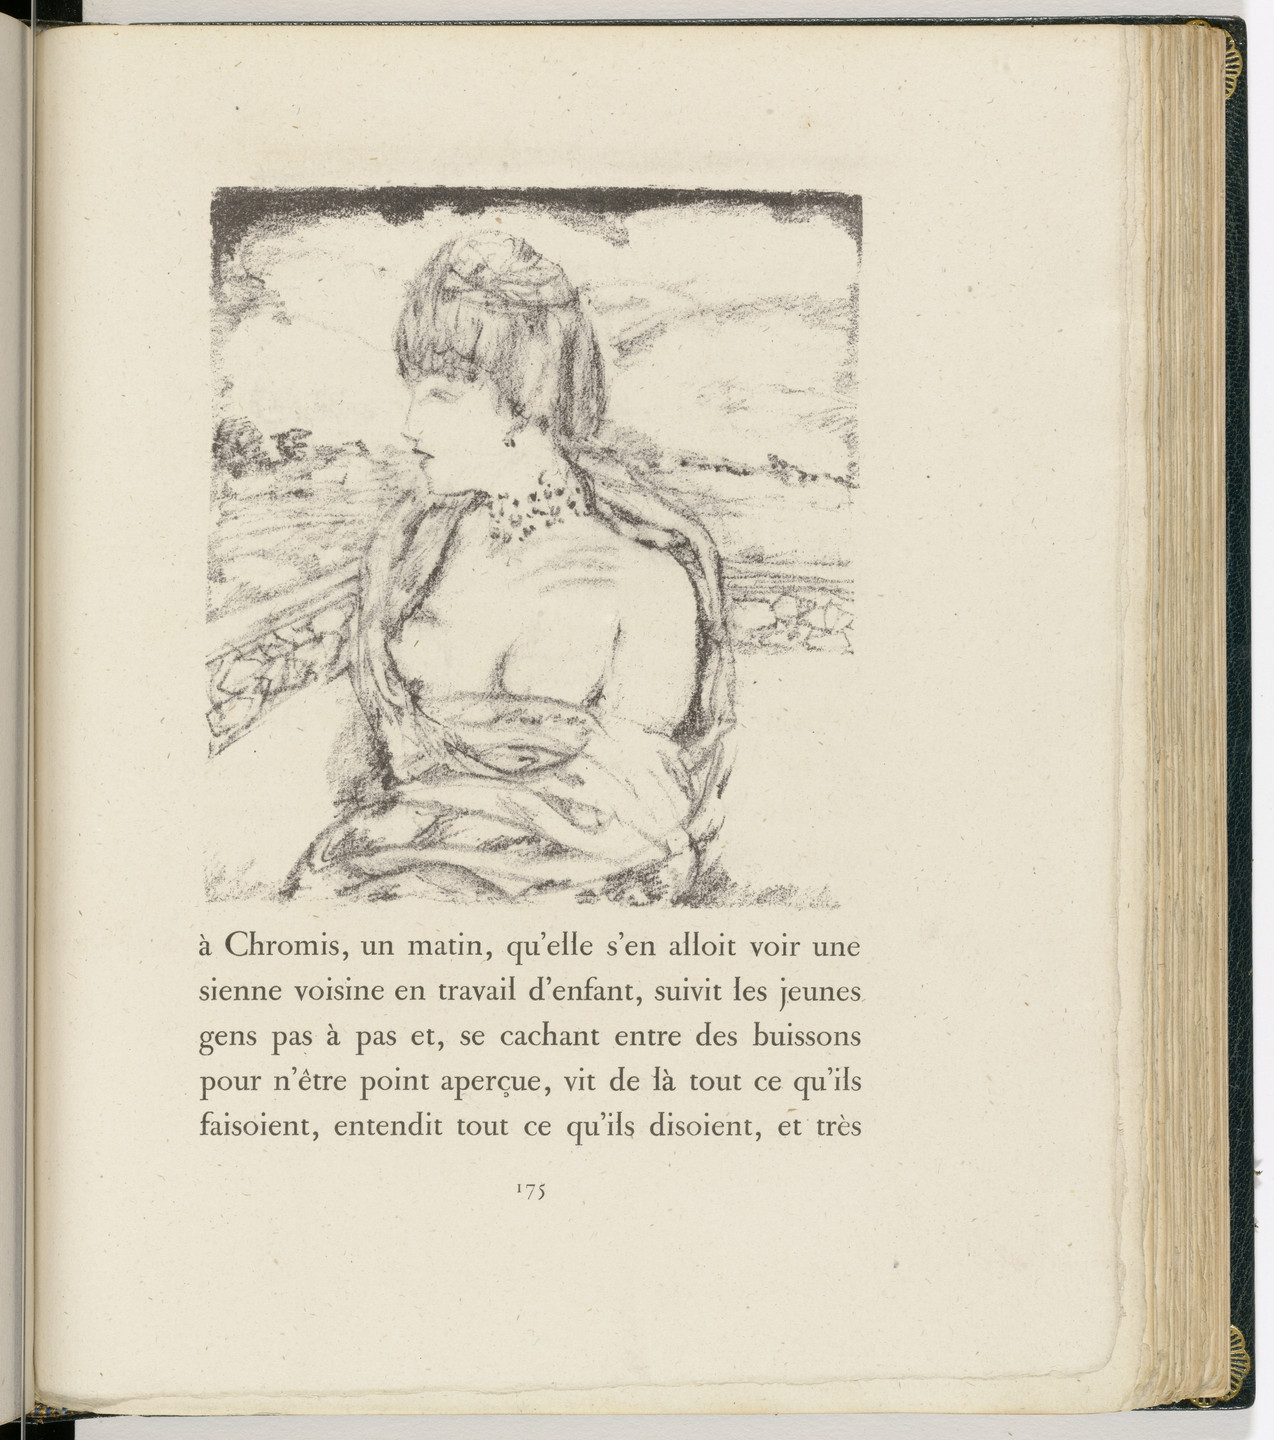 Pierre Bonnard. In-text plate (page 175) from Daphnis et Chloé. 1902